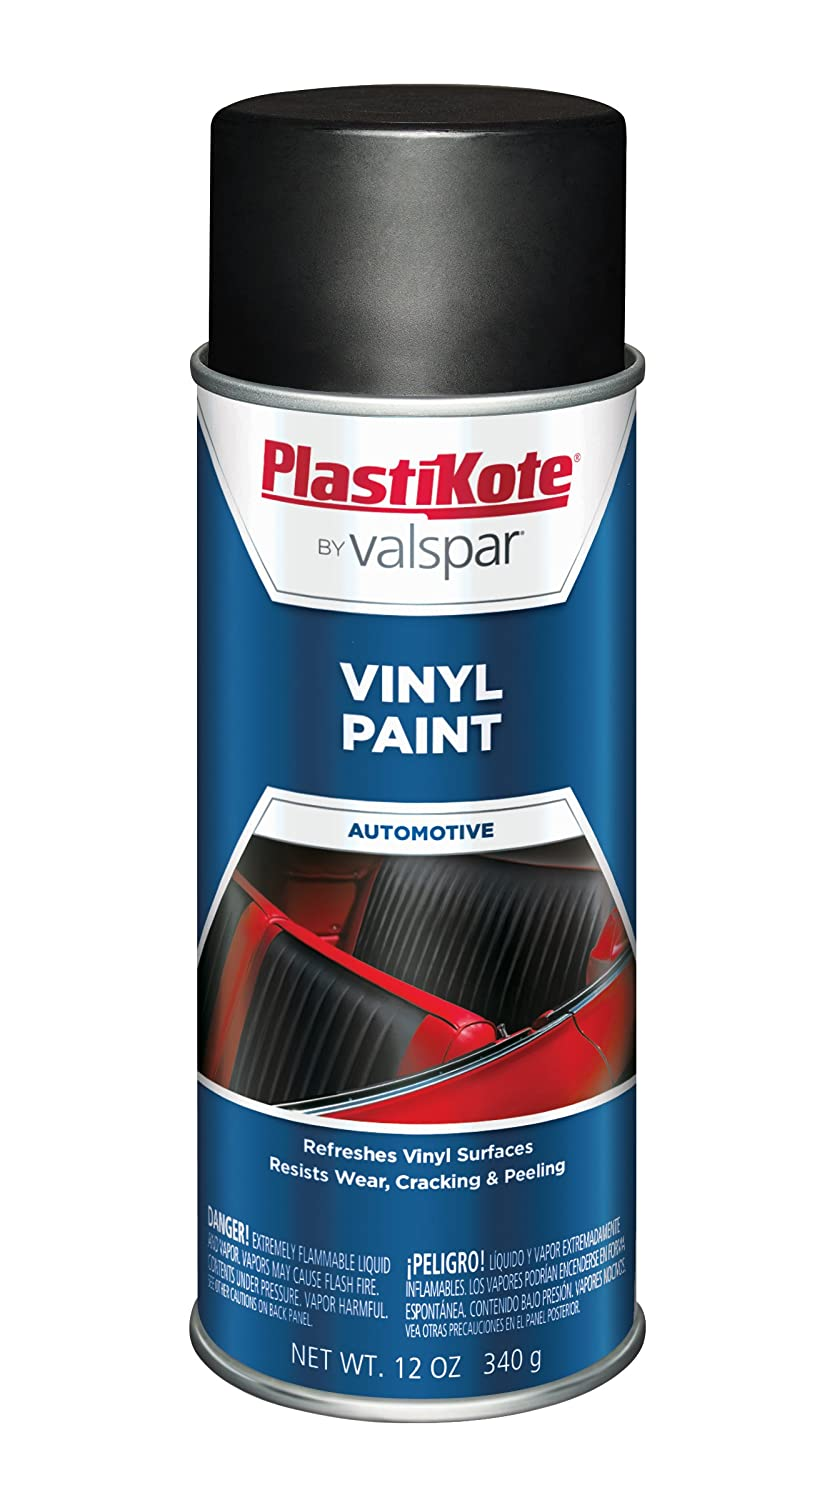 PlastiKote 408 Charcoal Gray Vinyl Paint, 12 oz.